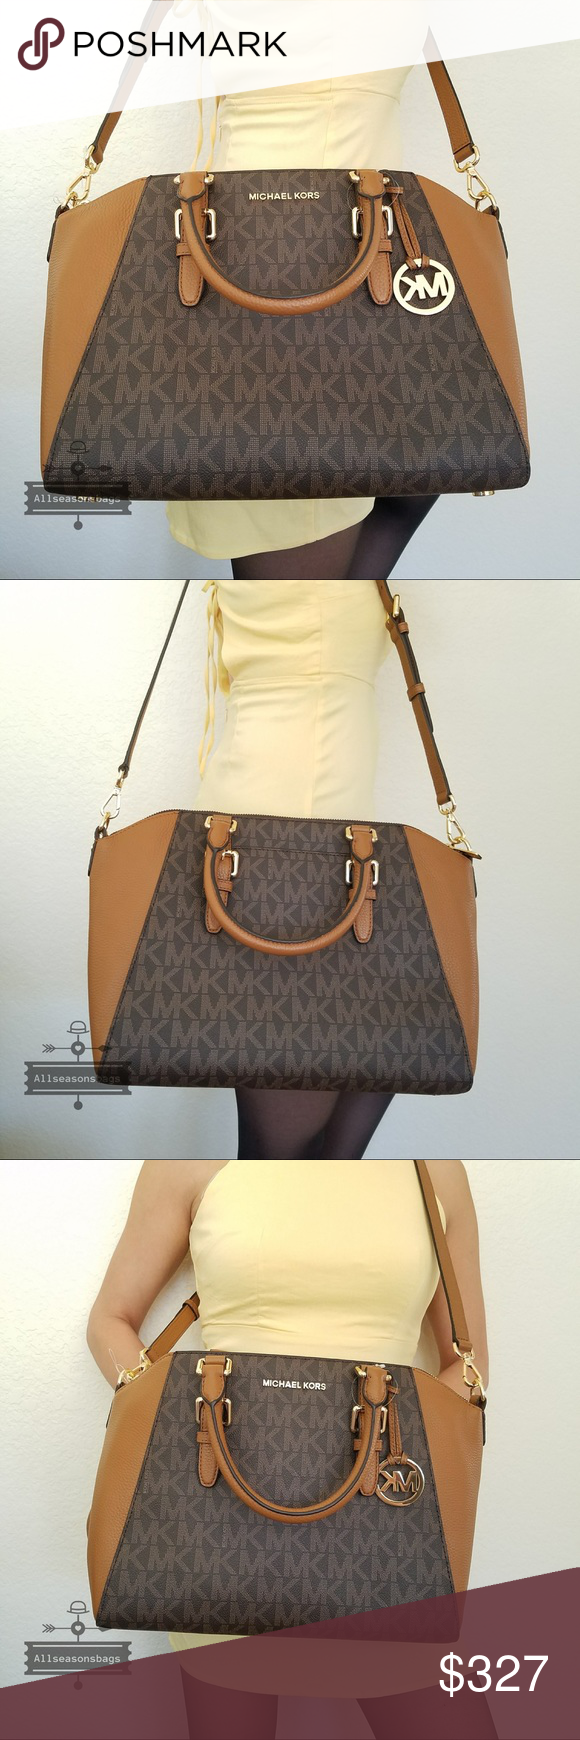 daf534ac2eff NWT Michael Kors Large Ciara satchel brown bag Michael Kors Large Ciara  Saffiano Leather Satchel Cross